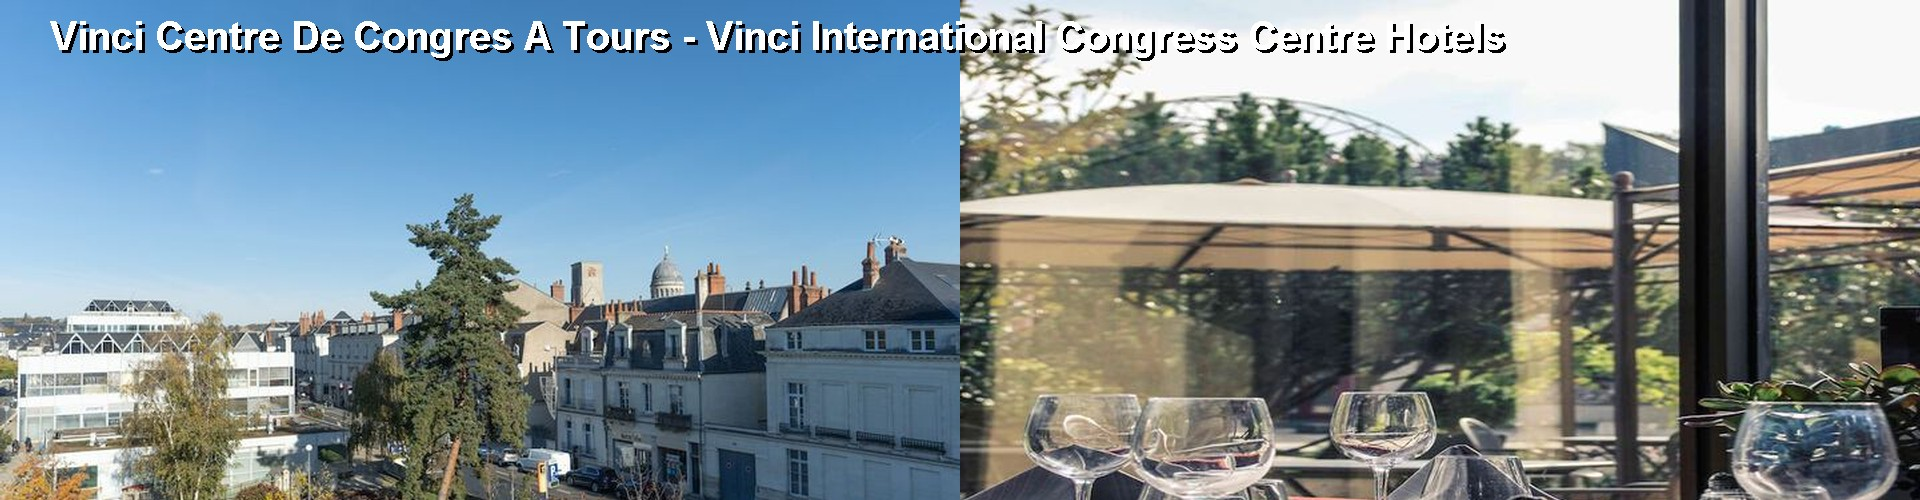 Inter Hotel La Terrasse Tours Hotels Near Vinci Centre De Congres A Tours Vinci International